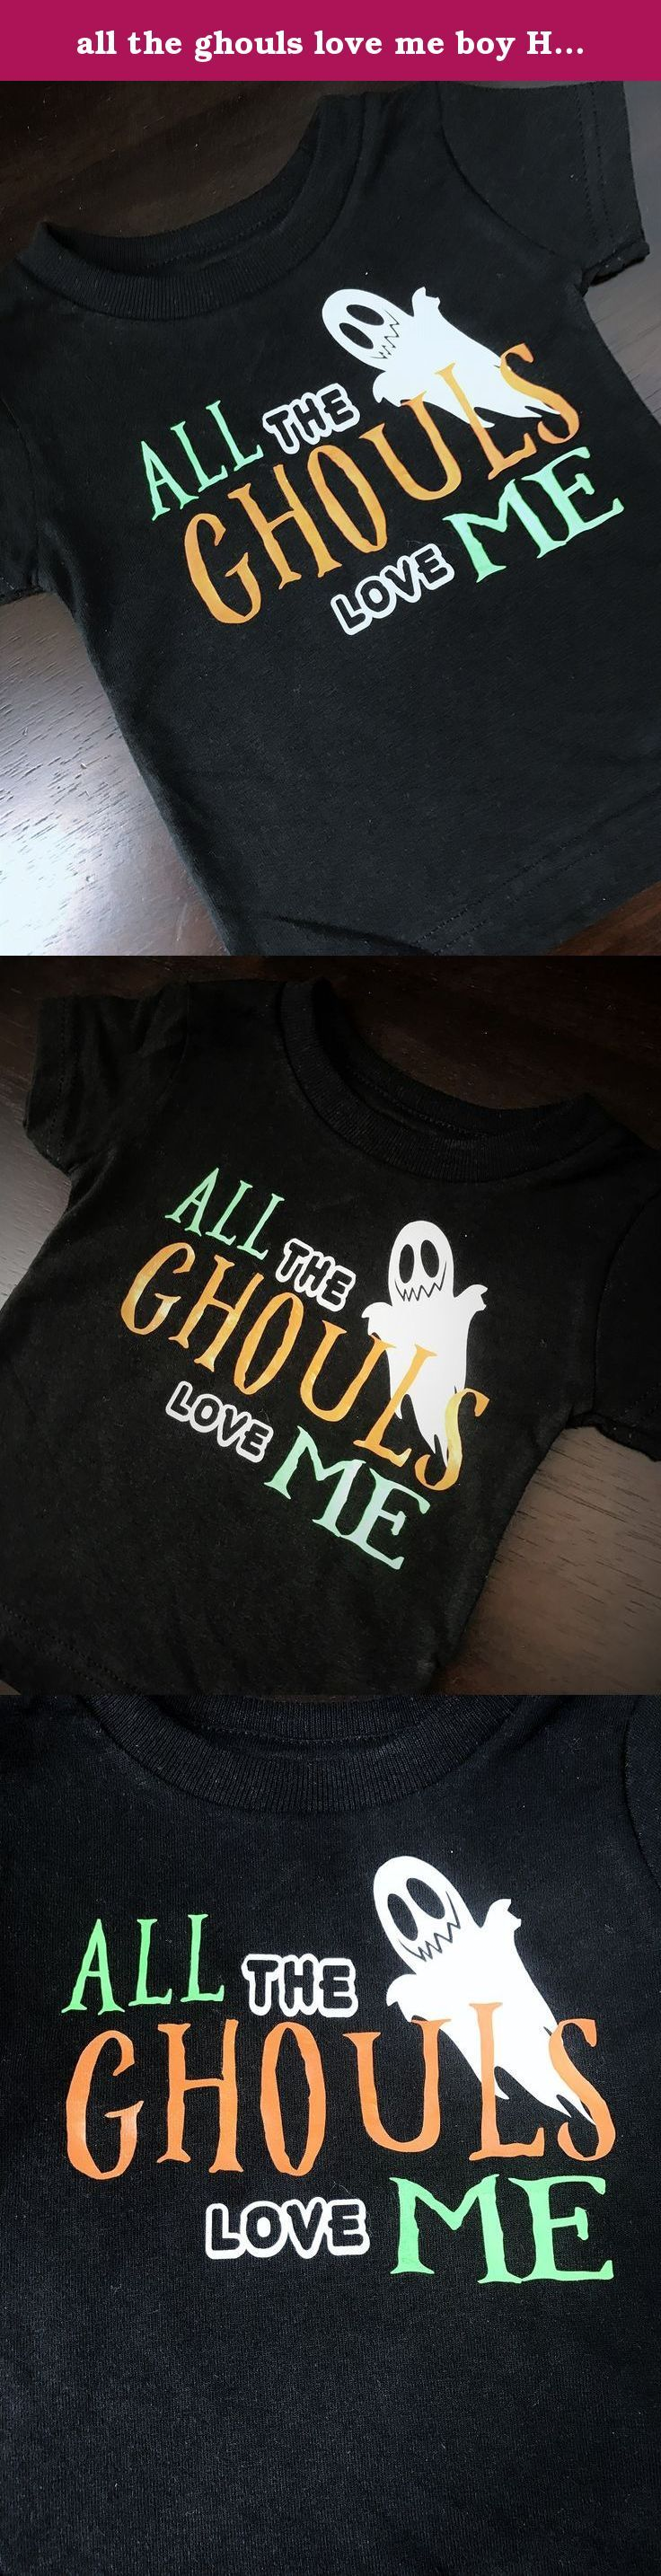 all the ghouls love me boy Halloween shirt boy ghost shirt funny Halloween shirt cute Halloween tee Ghouls Shirt Babys First Halloween. all the ghouls love me boy Halloween shirt boy ghost shirt funny Halloween shirt cute Halloween tee Ghouls Shirt Babys First Halloween This fun Halloween shirt is perfect for your little one this Halloween season. This shirt can be customized to fit your needs! Any customization requests please send me a message and we can make it work. Every piece is a...